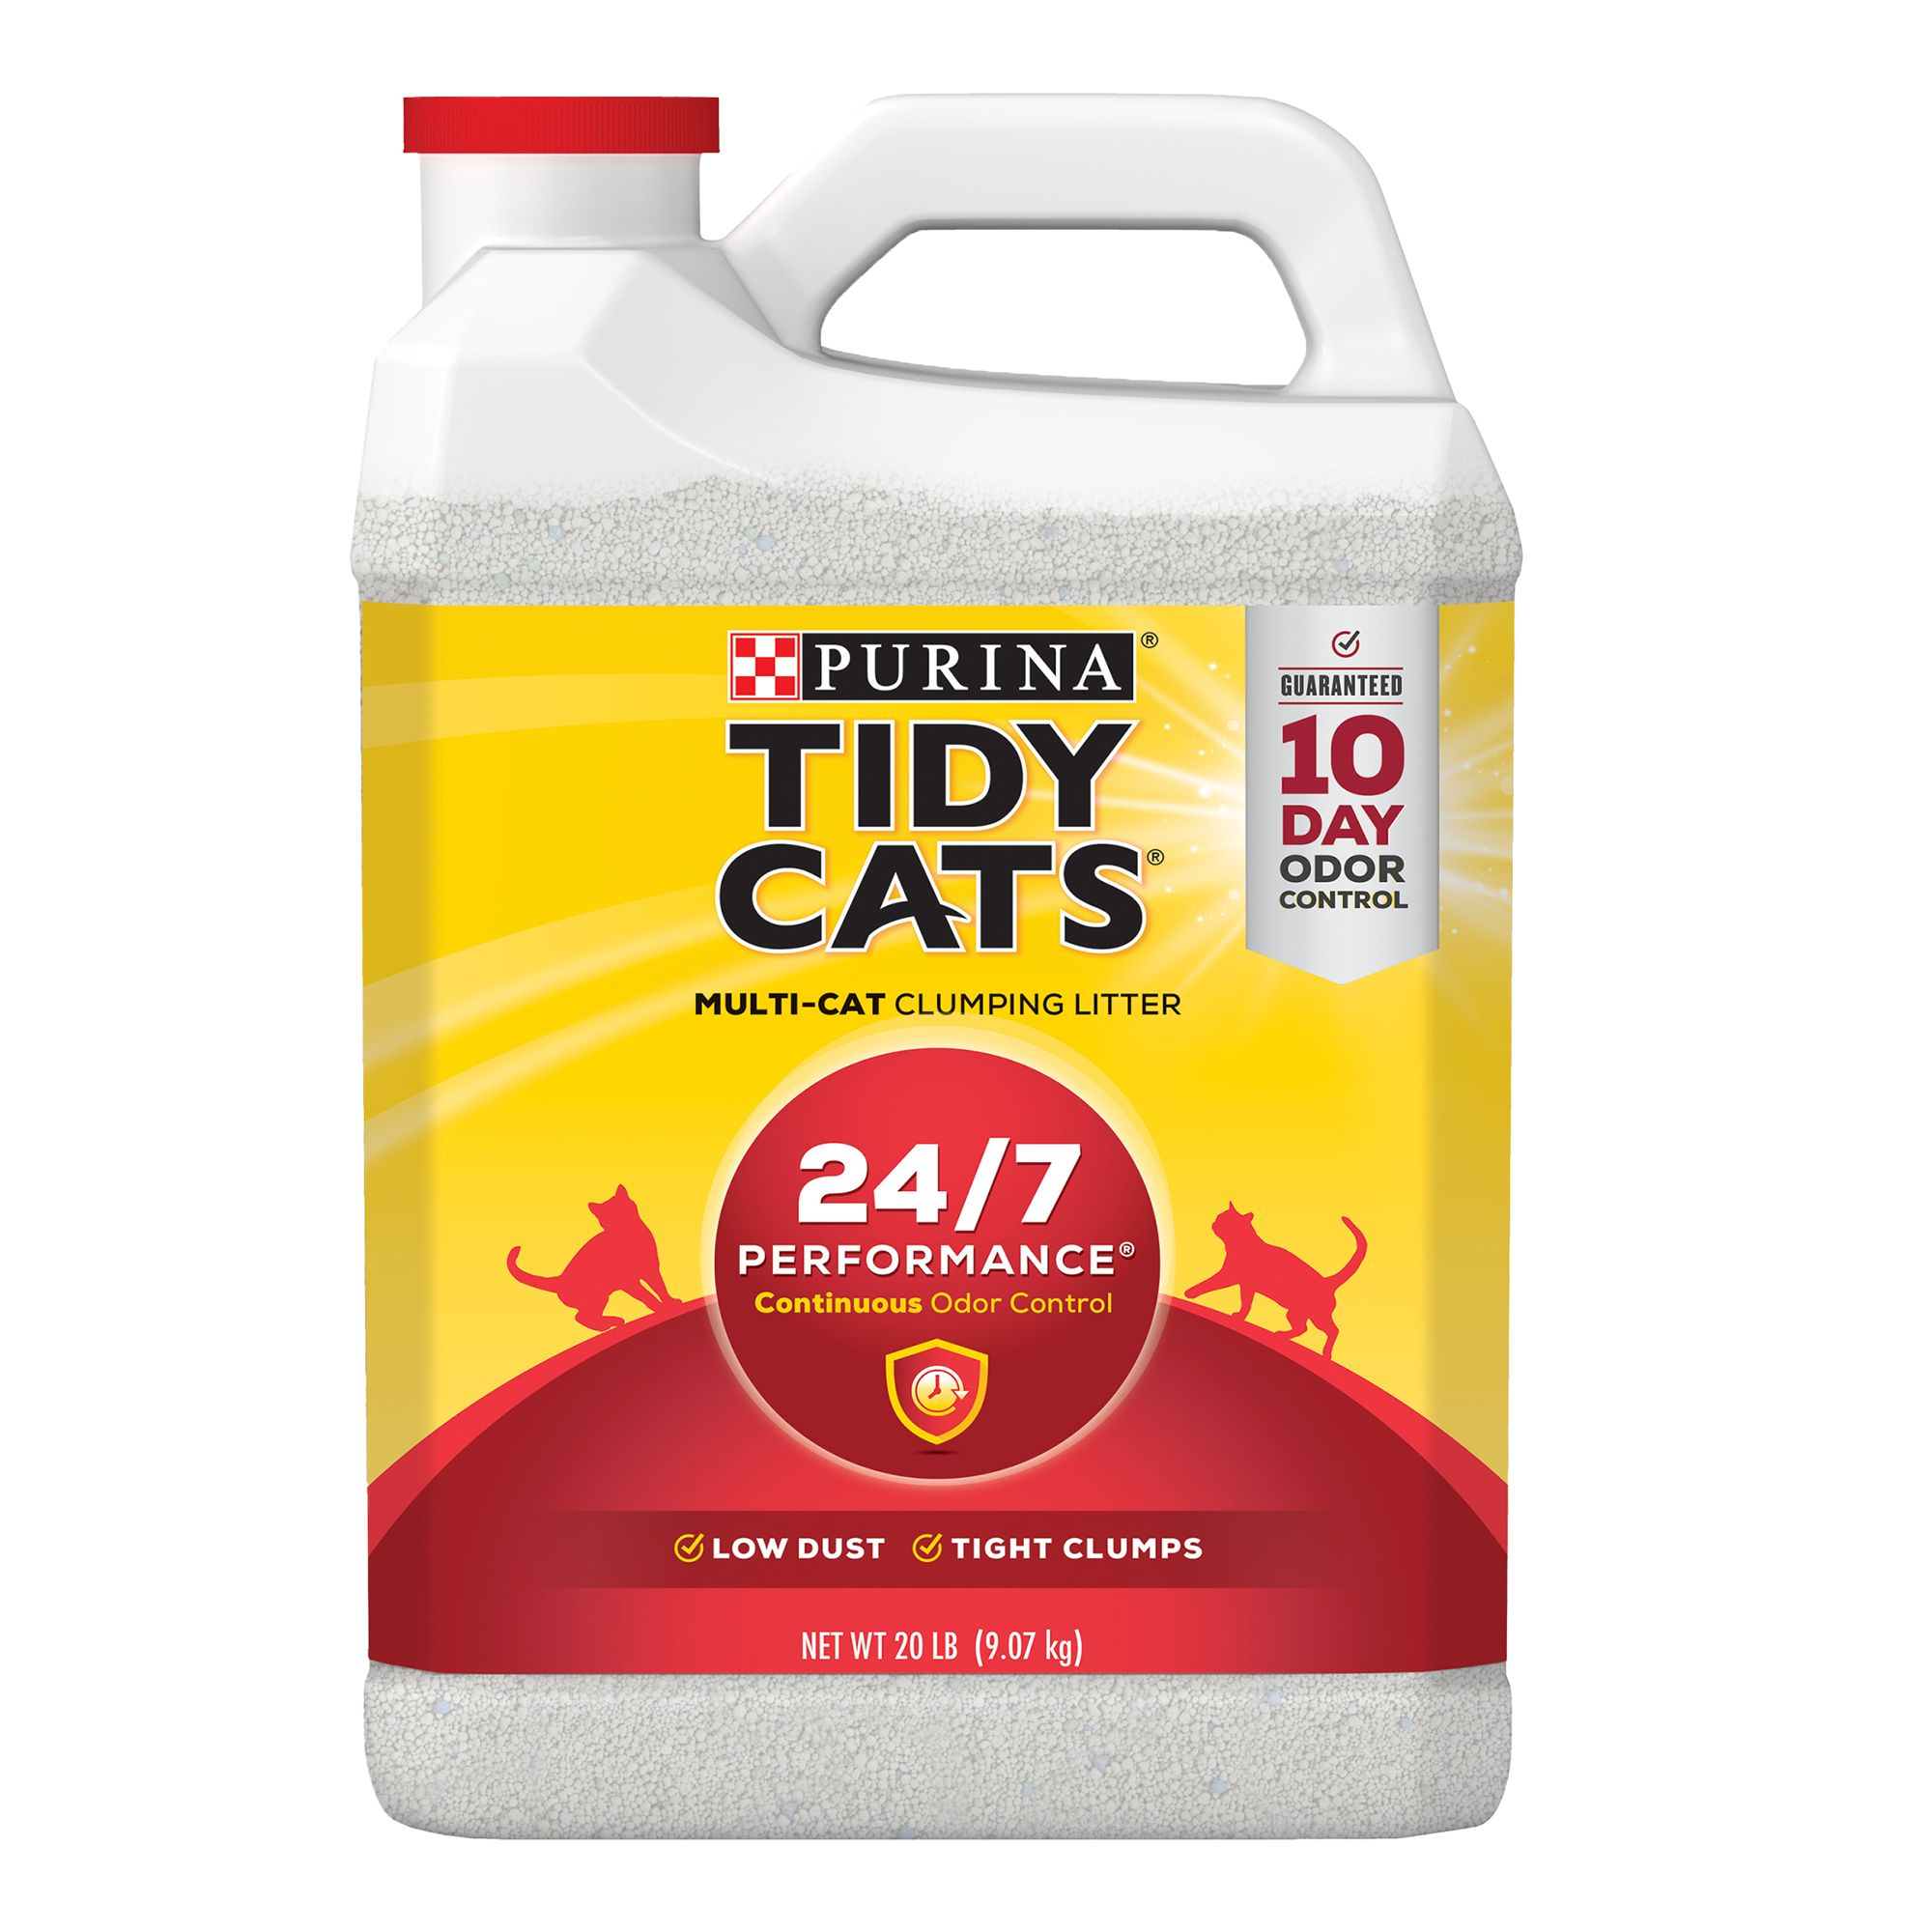 Purina Tidy Cats 24/7 Performance Cat Litter Clumping Multi Cat Size 20 Lb